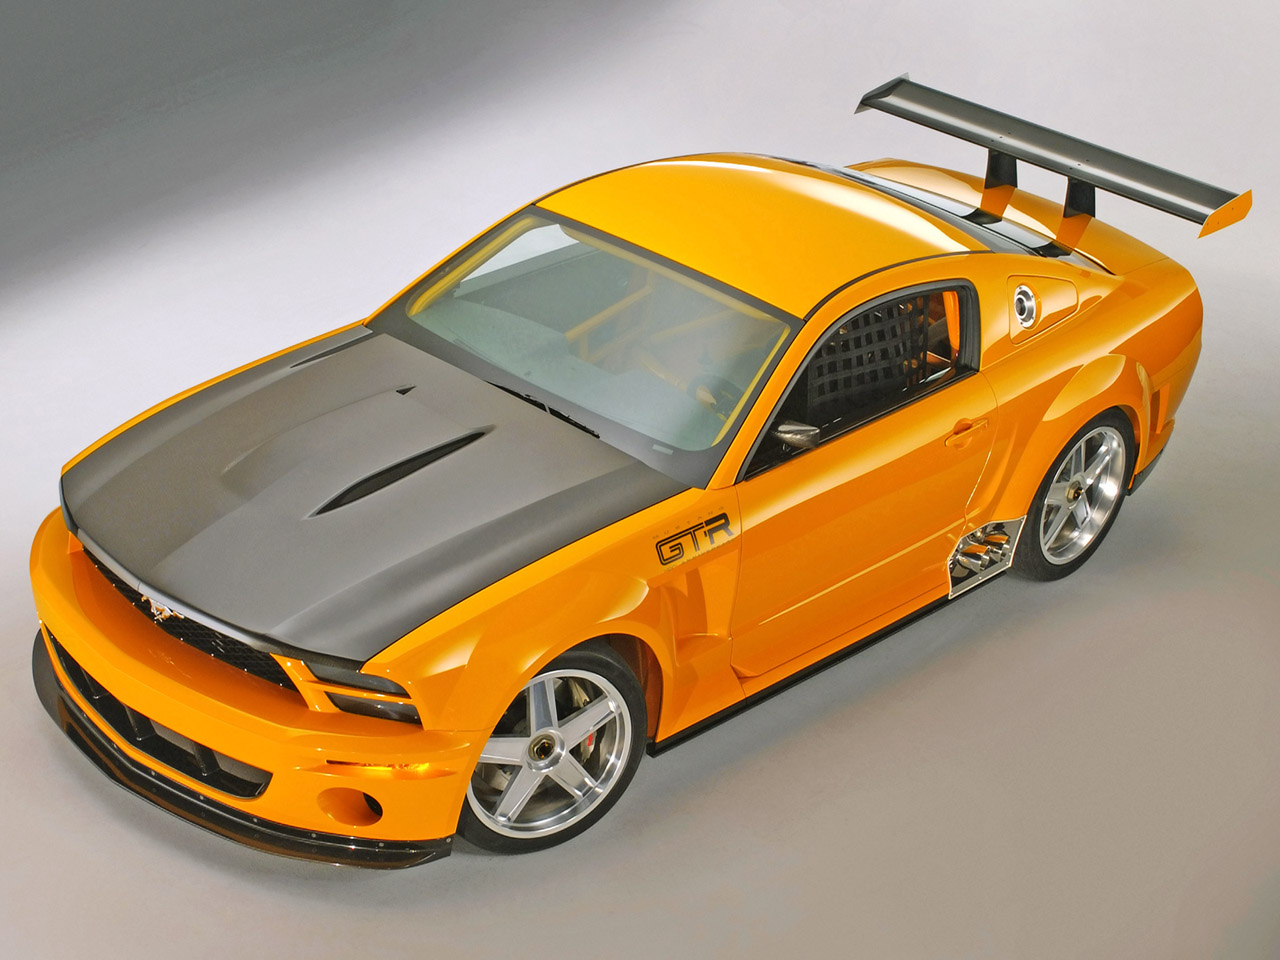 2005 Ford Mustang Gt R History Pictures Value Auction Sales 2002 Mach Sound System Research And News